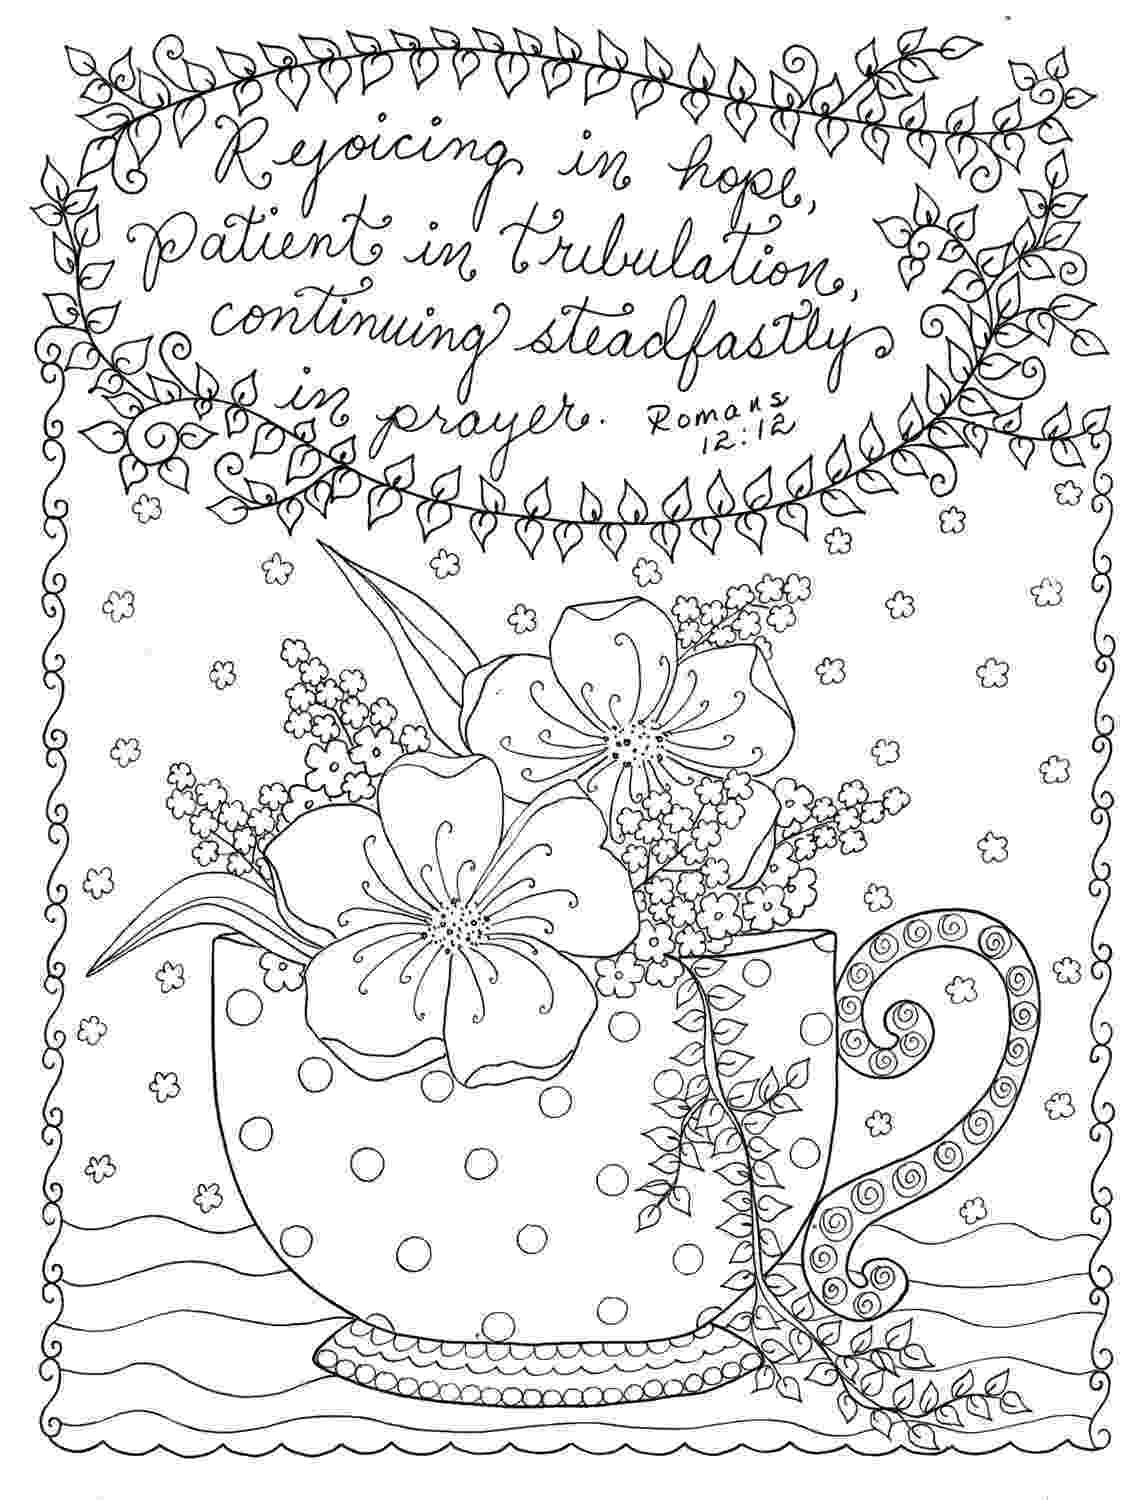 christian bible coloring pages free printable christian coloring pages for kids best coloring pages christian bible